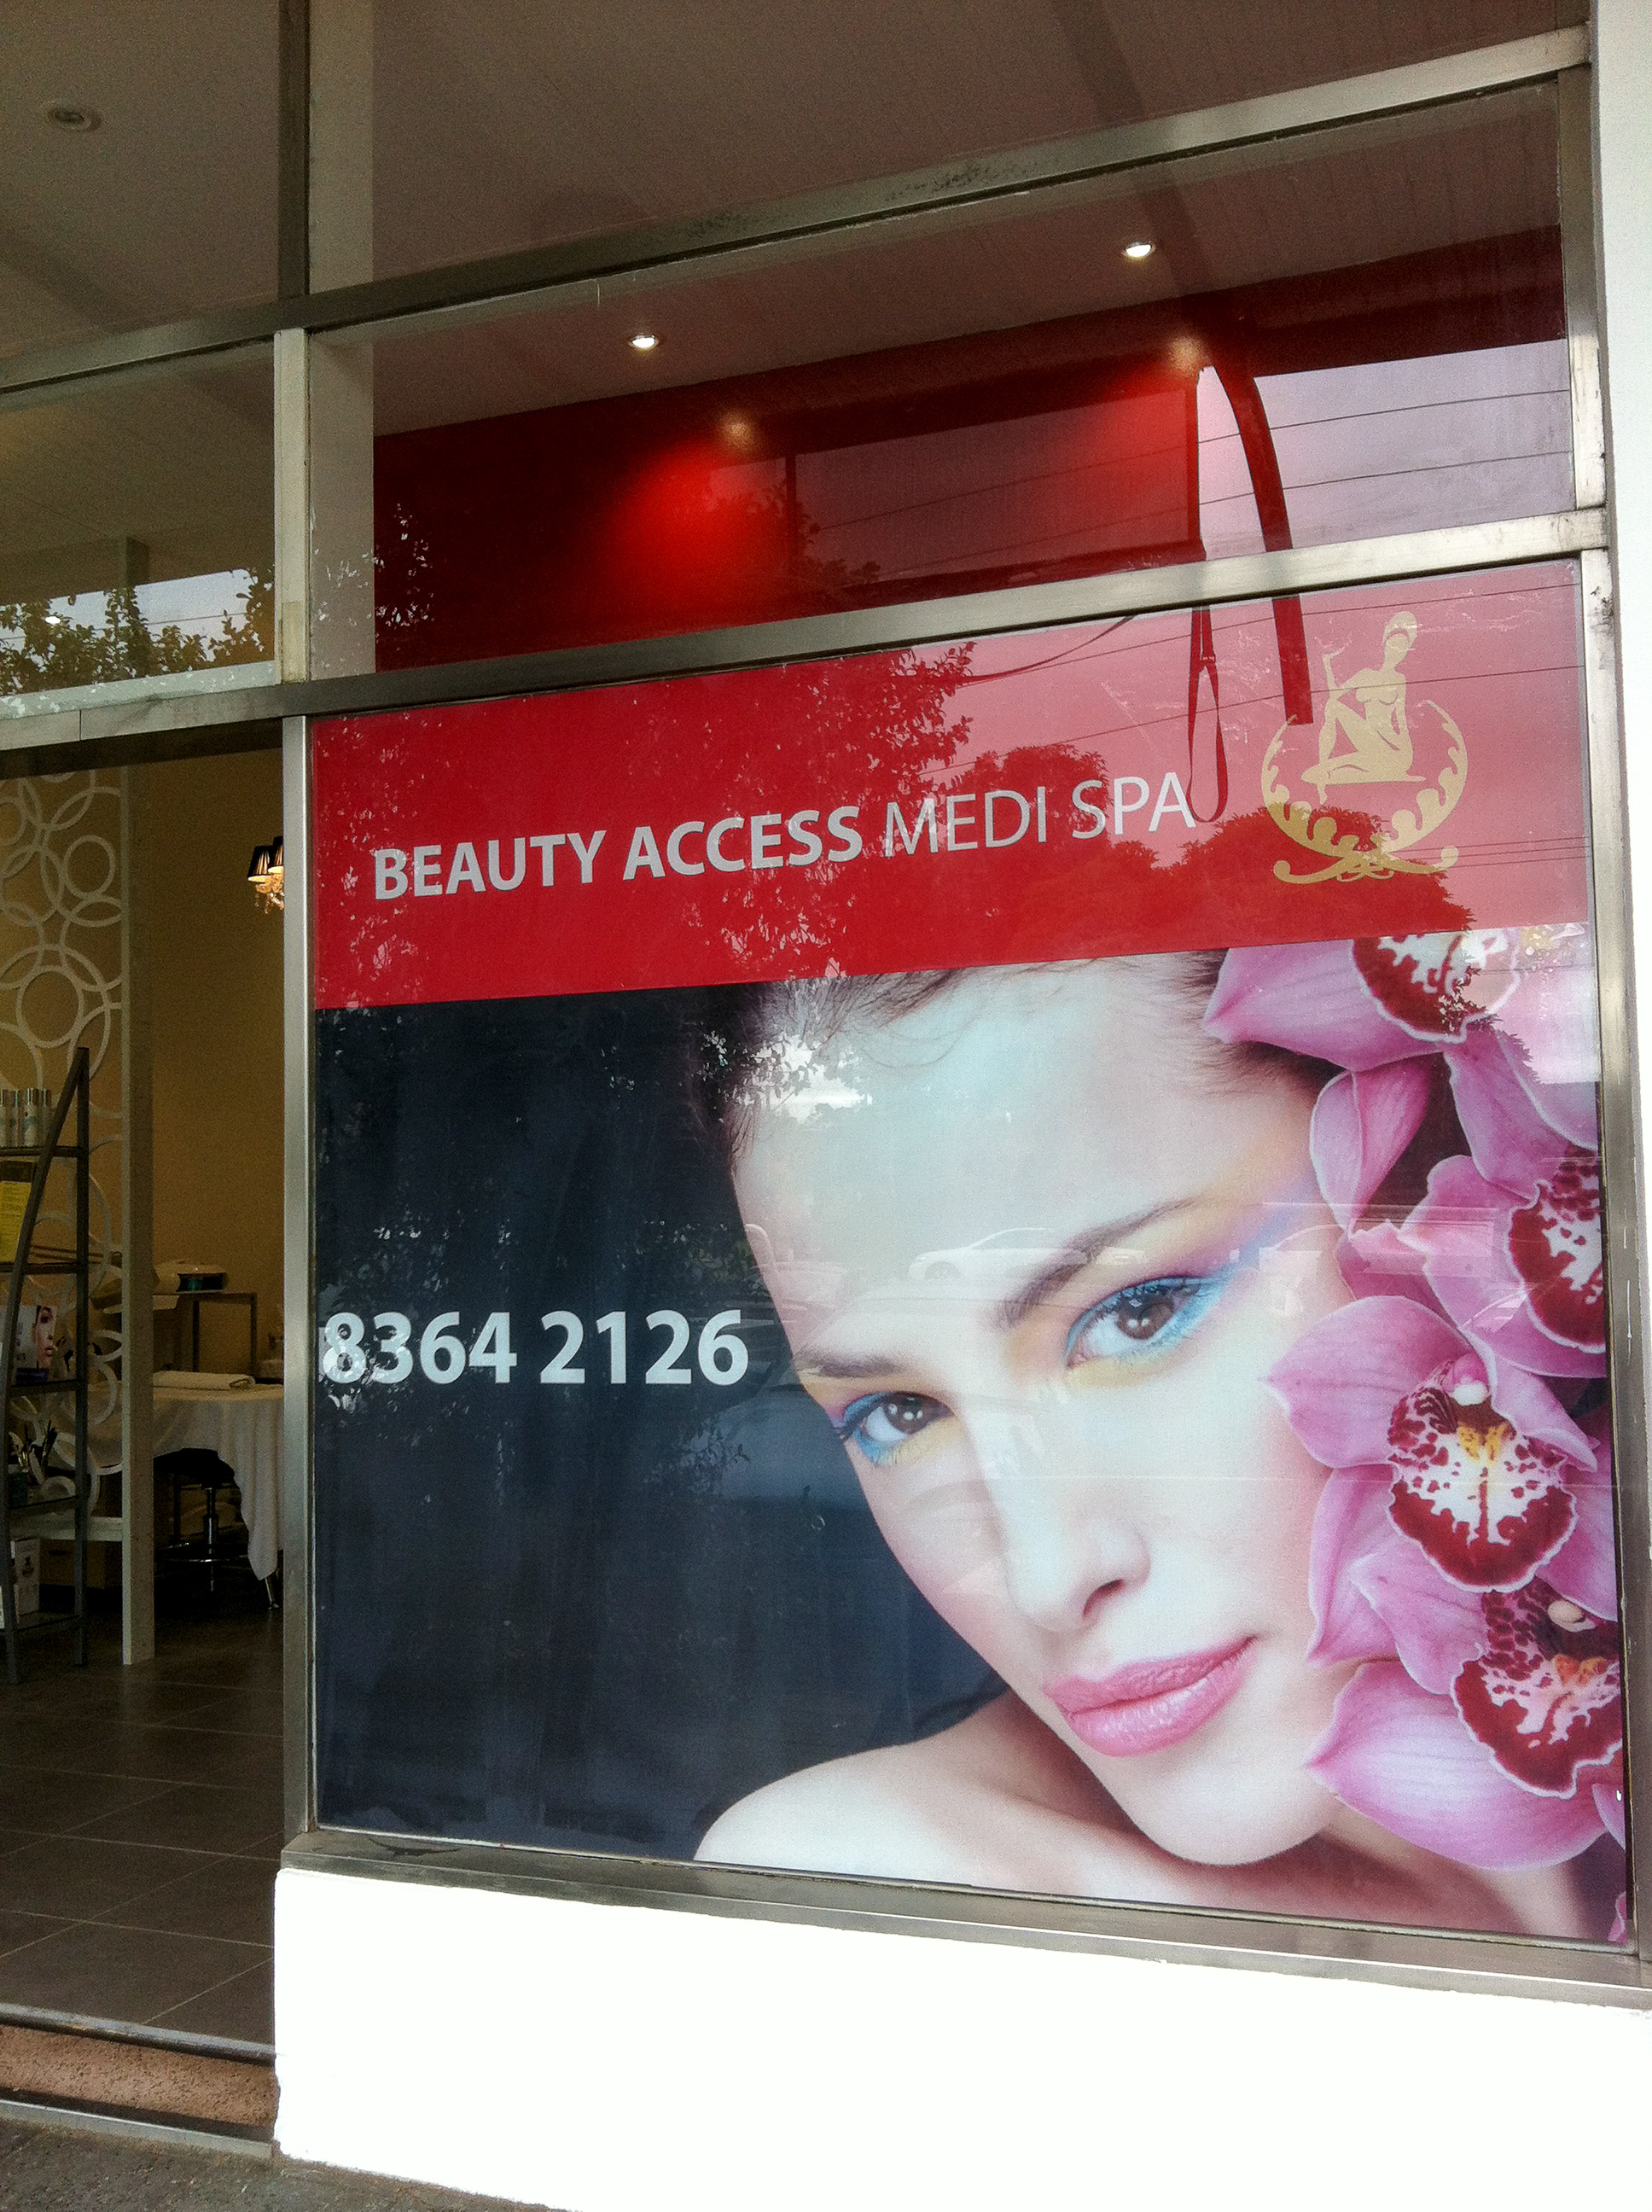 Beauty Access Medi Spa